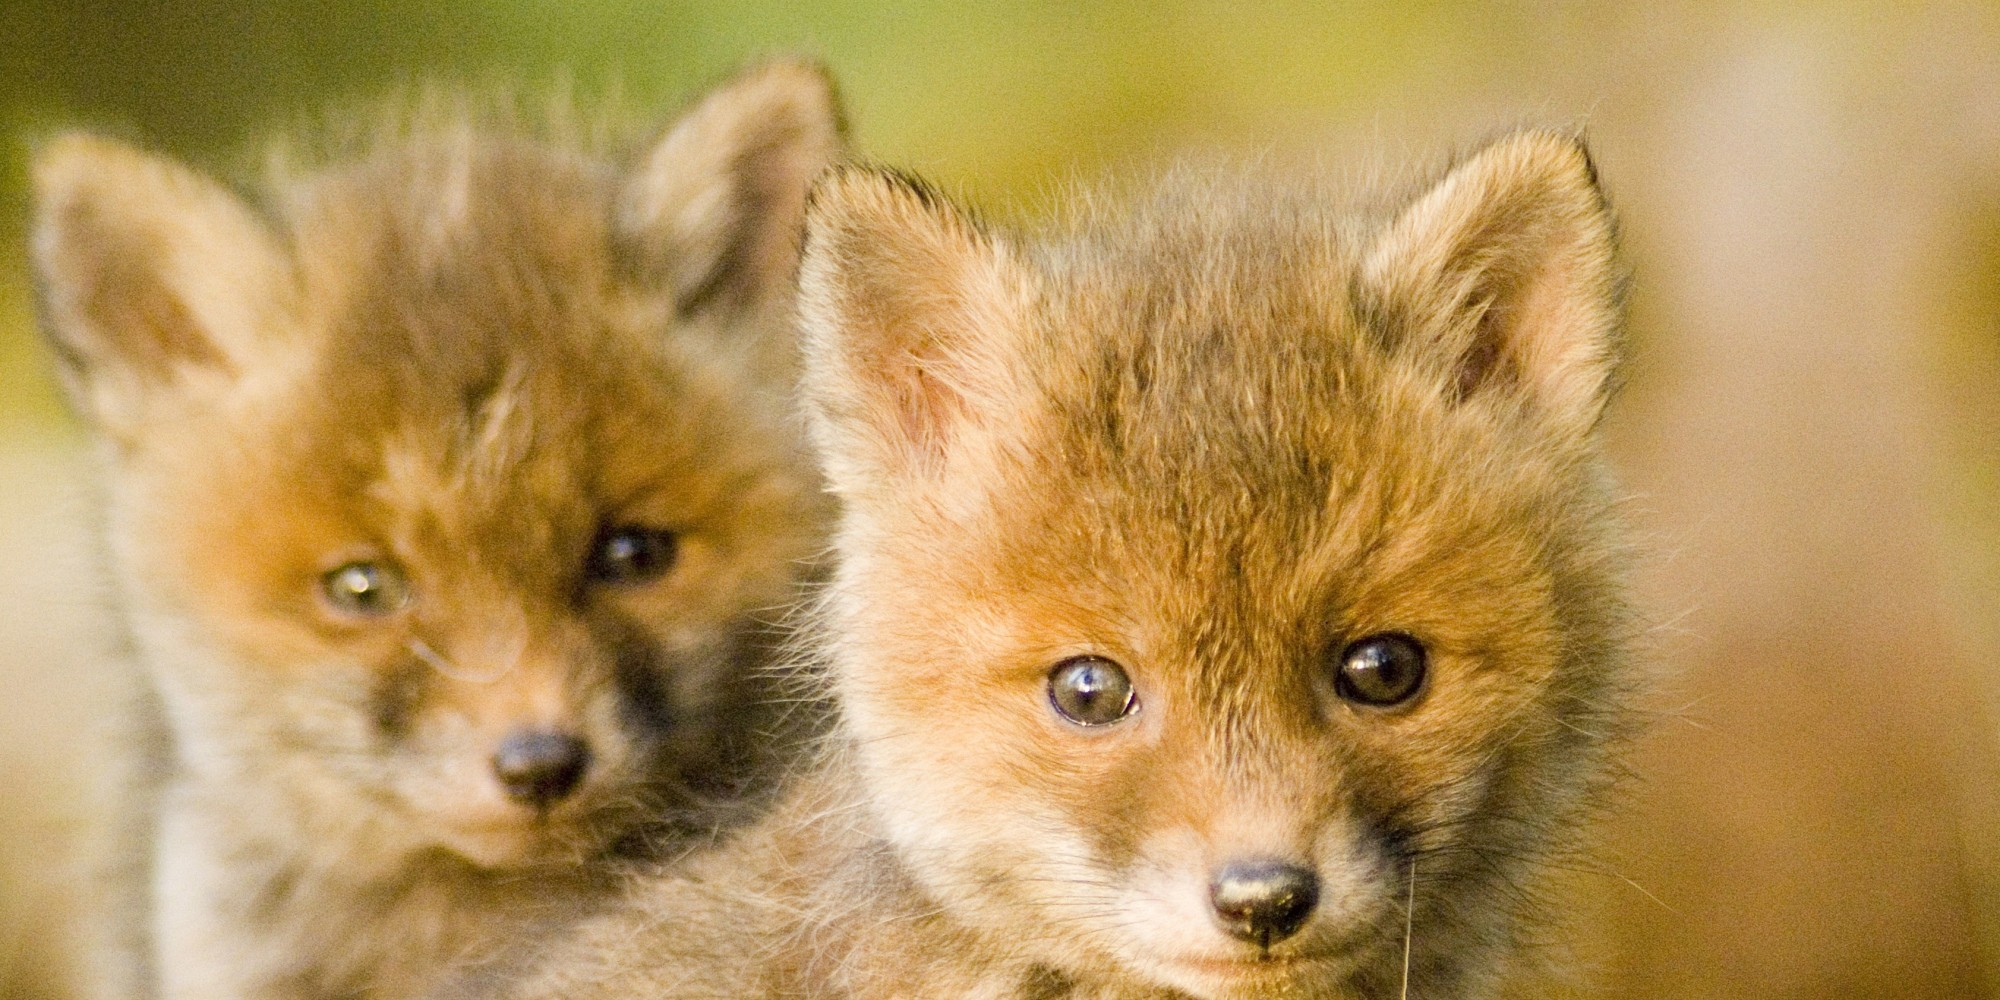 Foxes in the Barn - There's Nothing Natural About This ...  Foxes in the Ba...